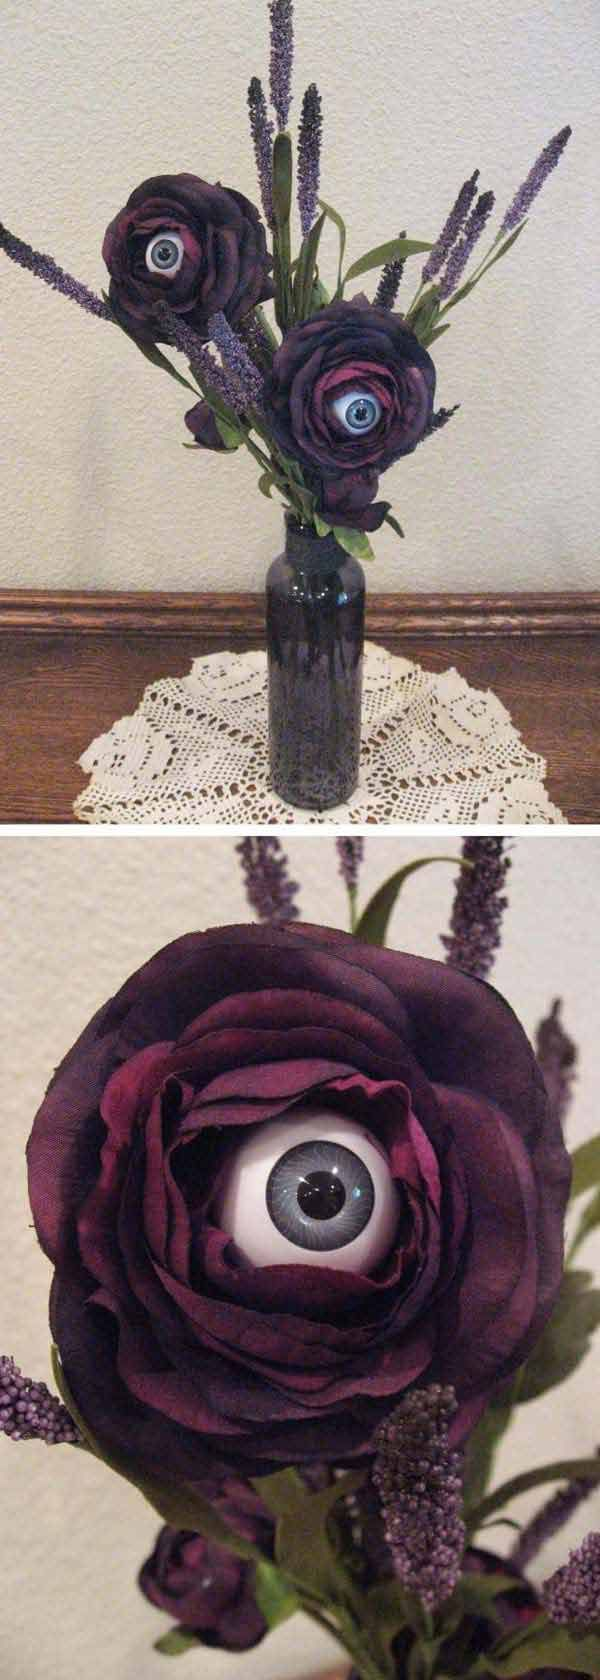 Eyeball Flower - 42 Last-Minute Cheap DIY Halloween Decorations You Can Easily Make